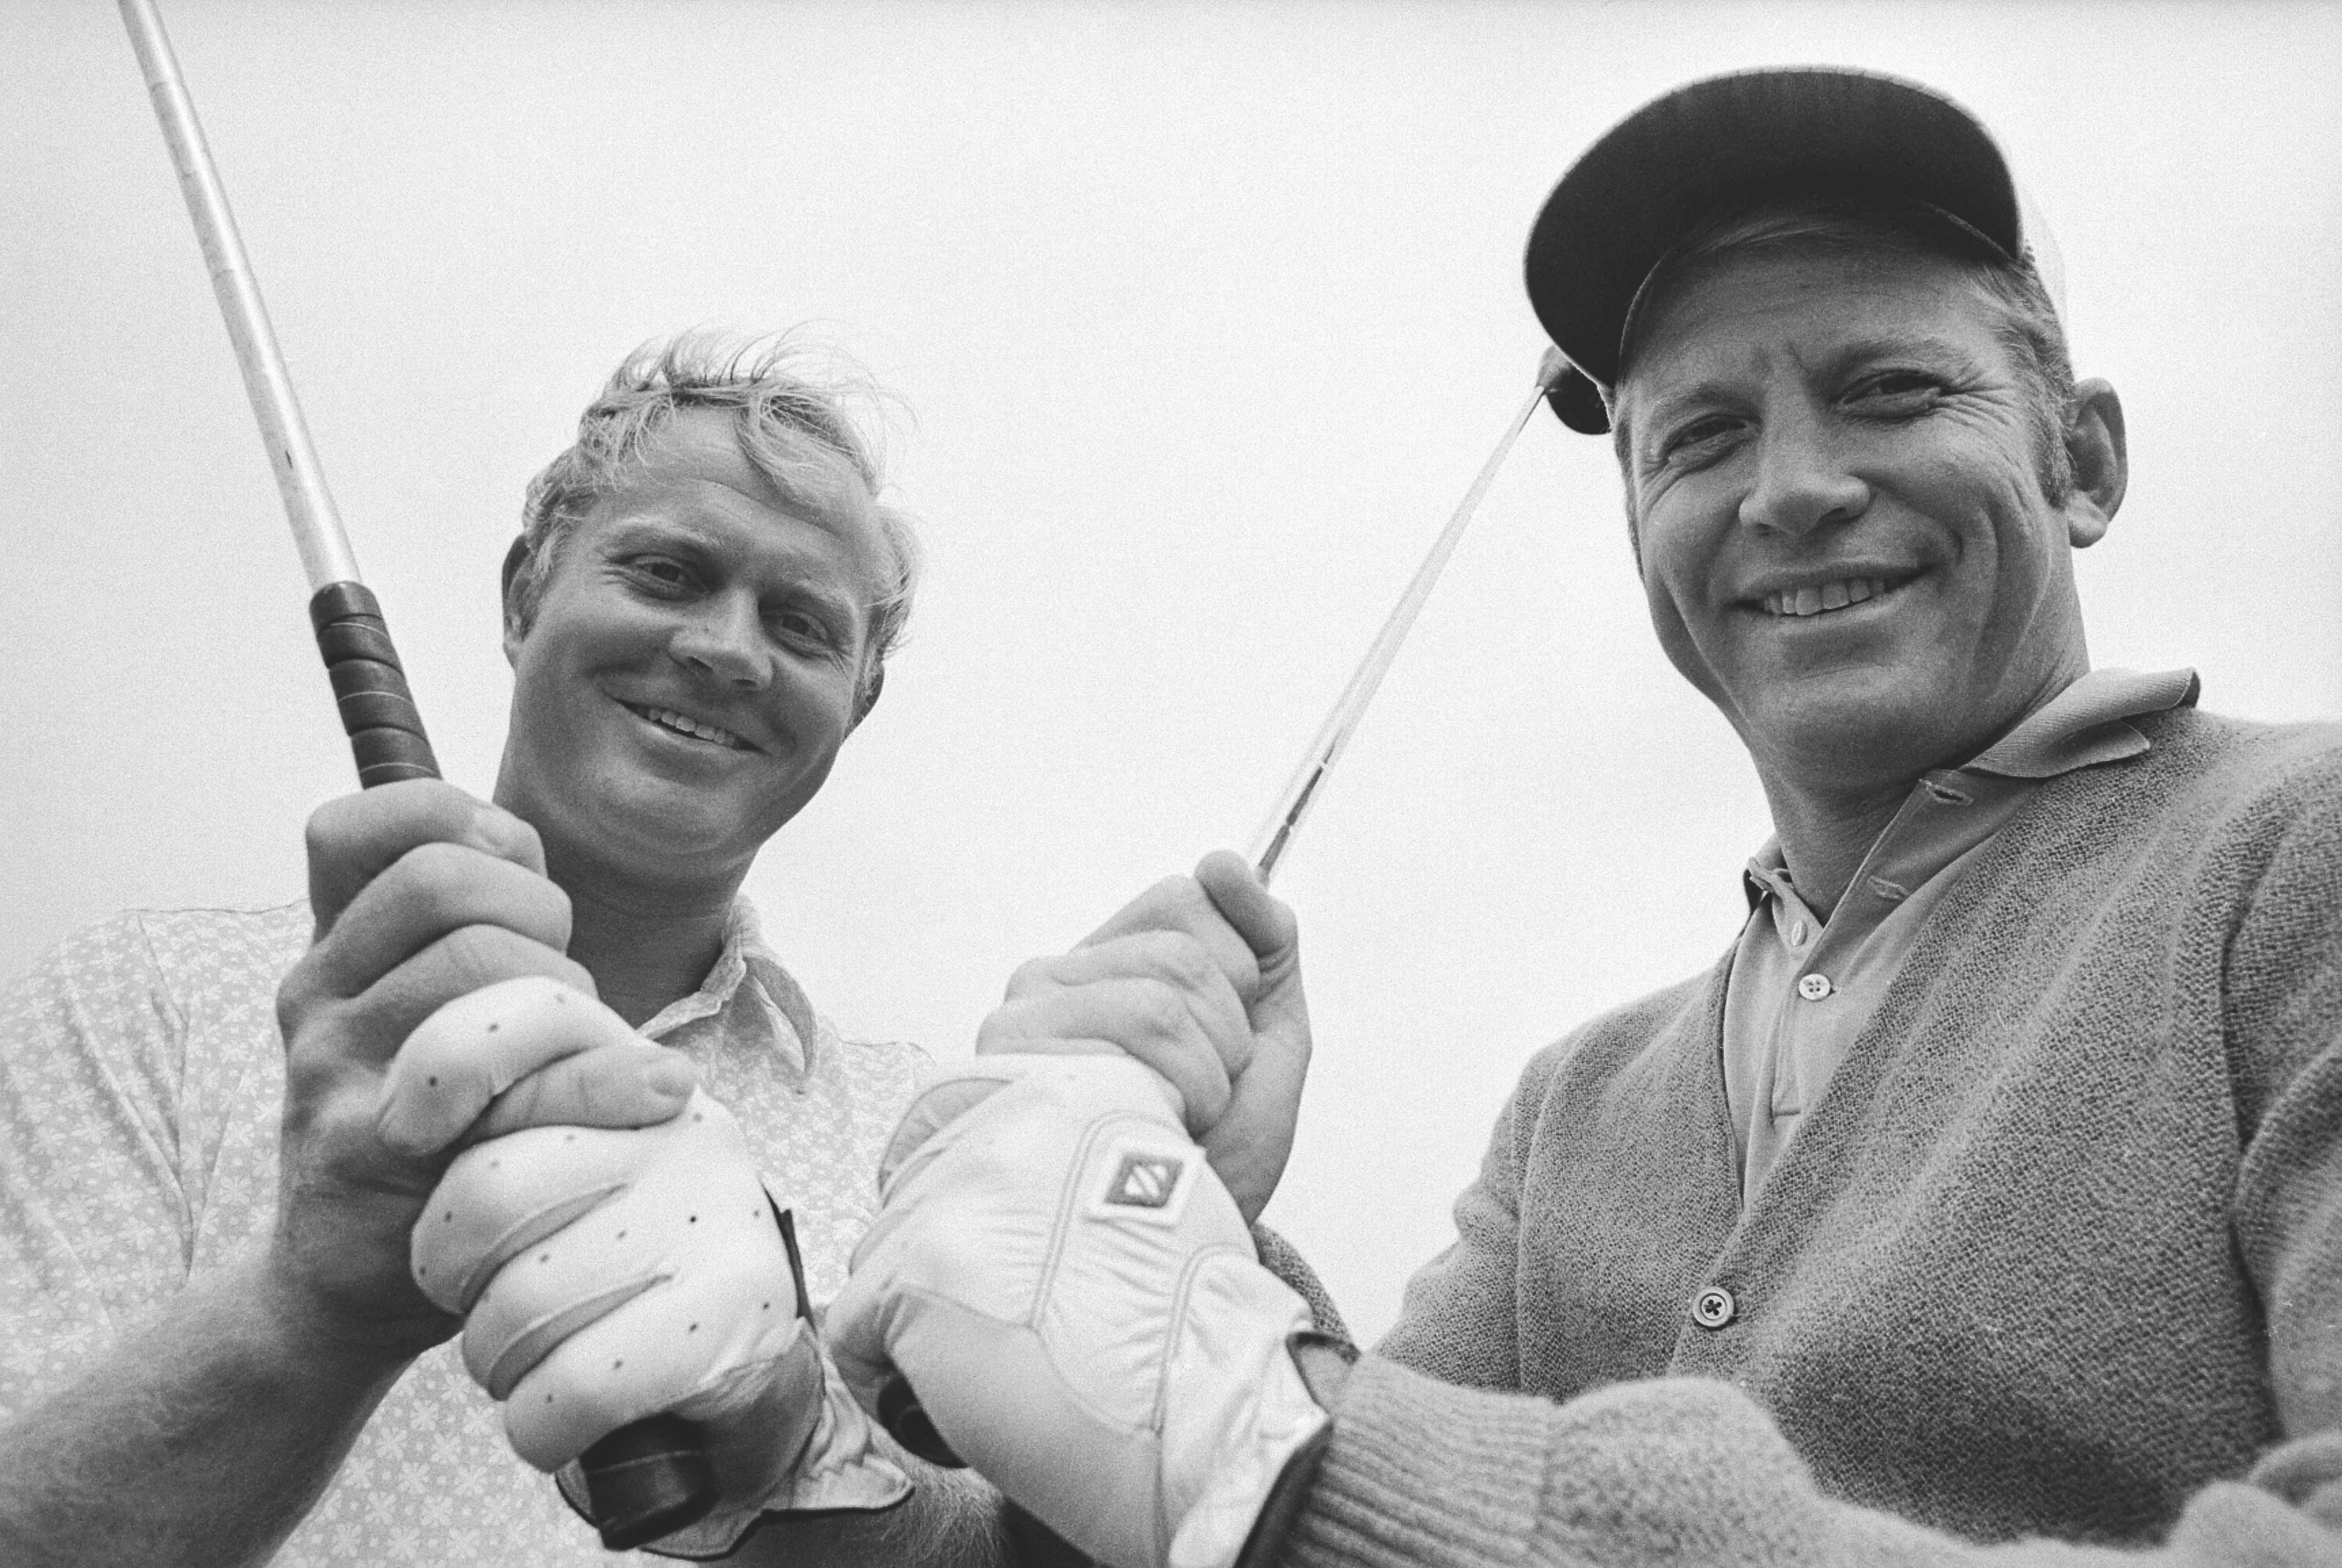 With Mickey Mantle